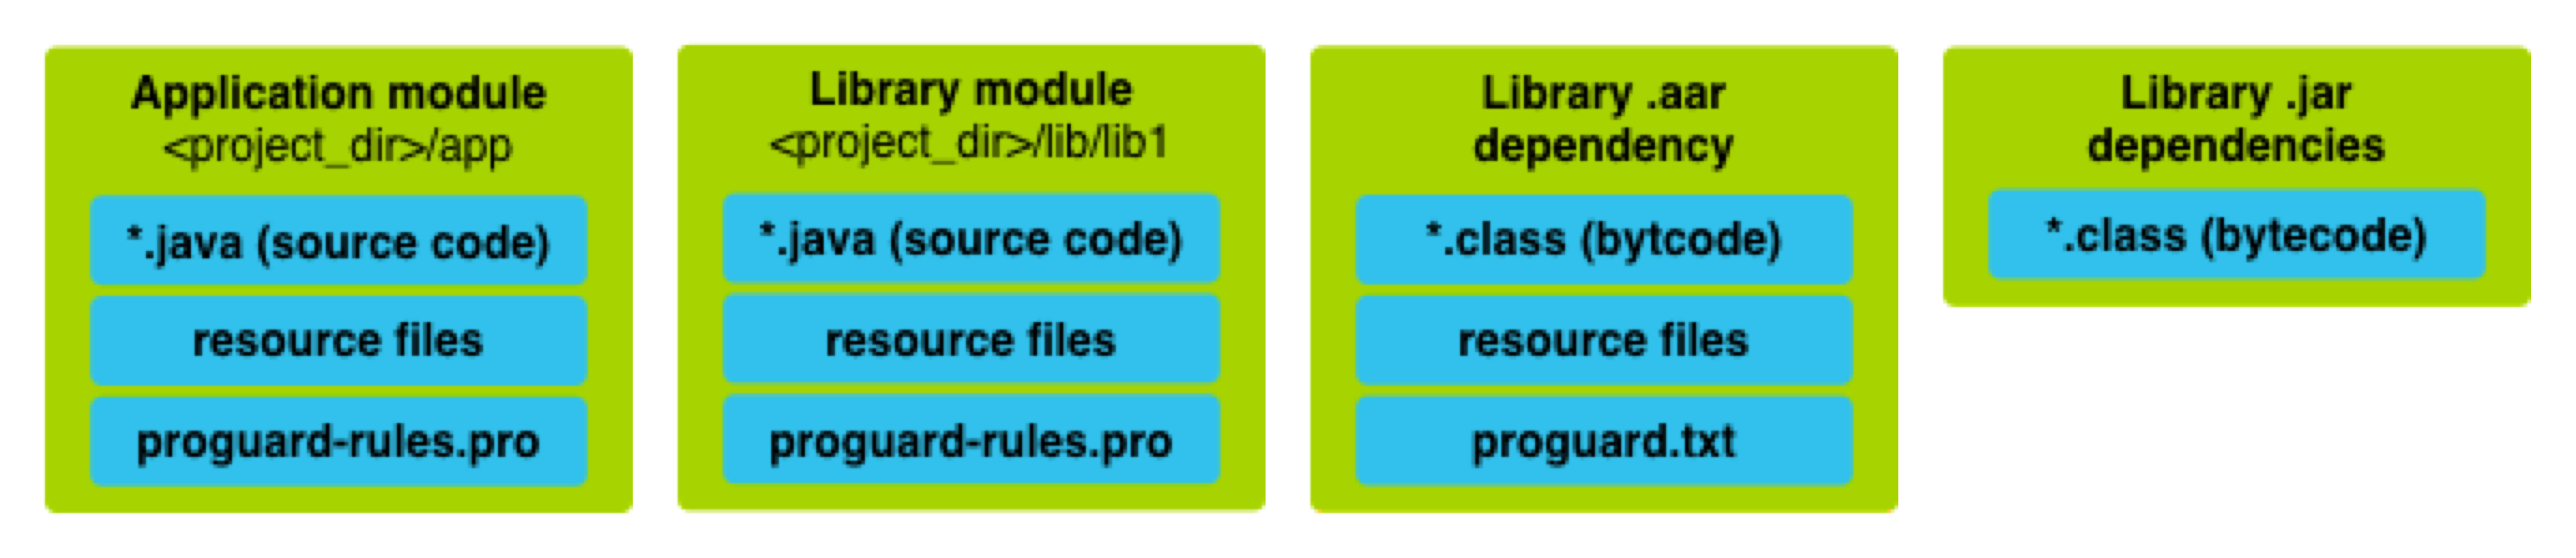 App module, library module, .aar and .jar dependencies